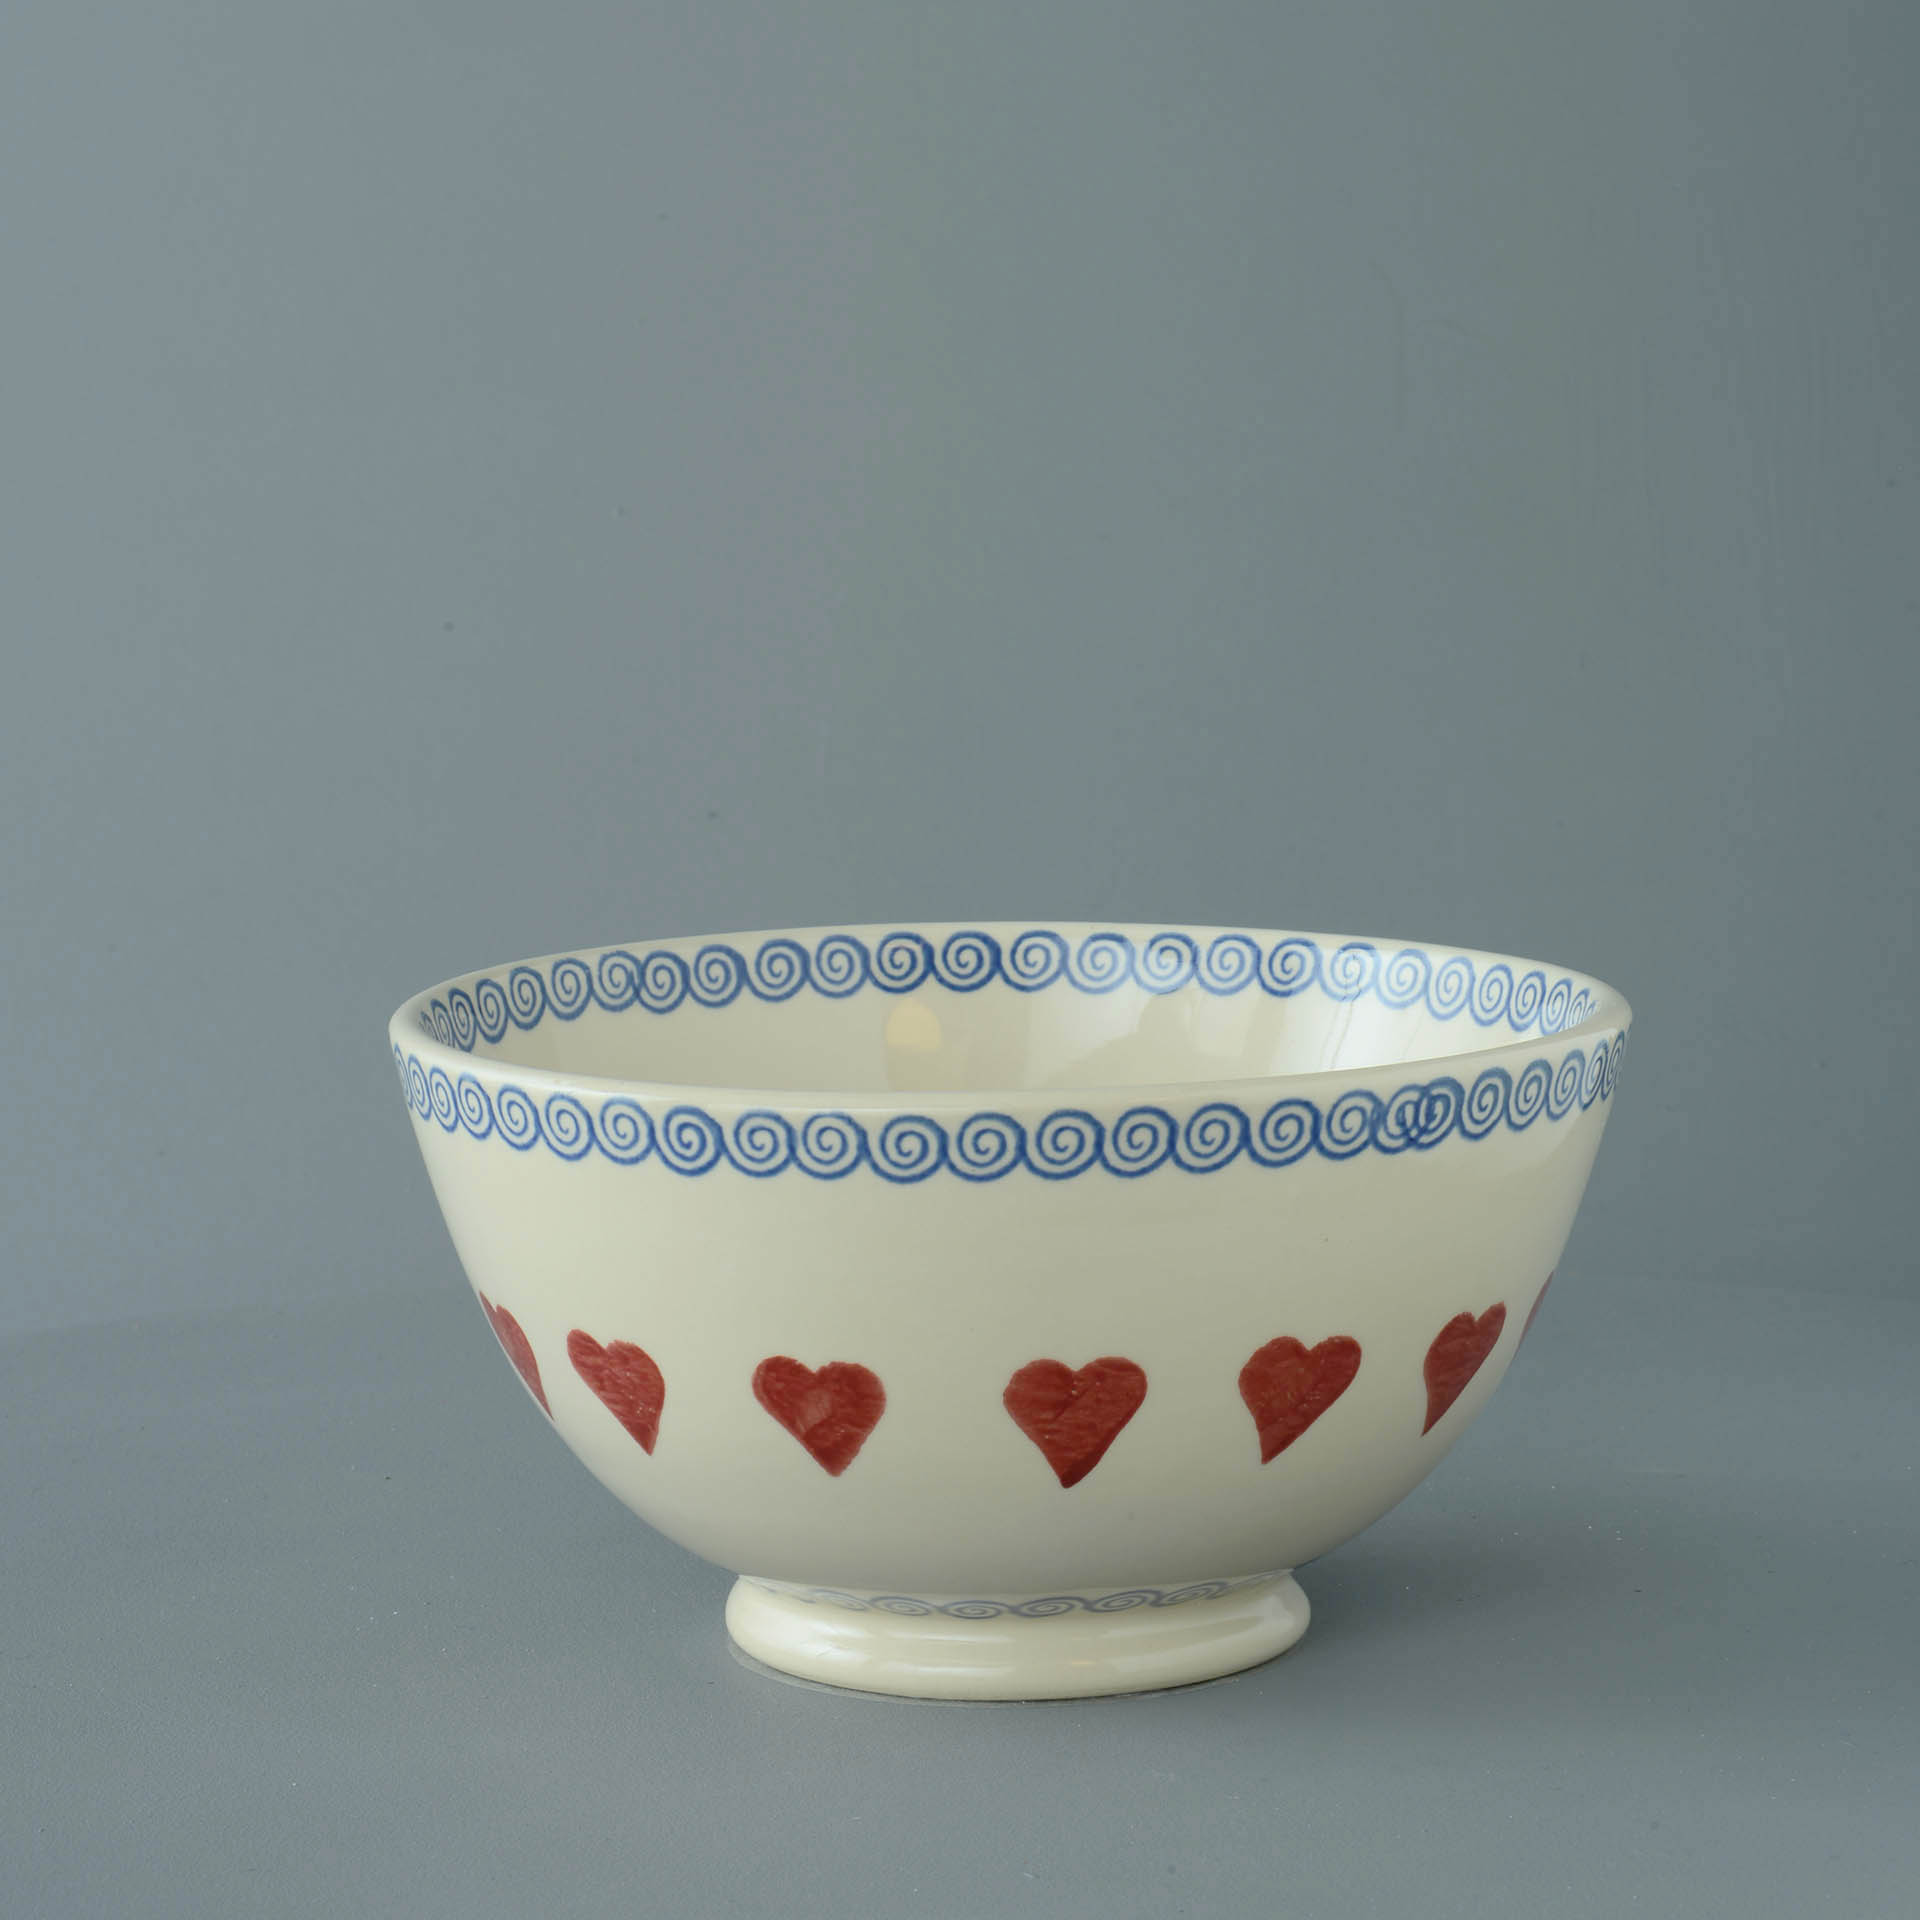 Hearts Serving Bowl 11 x 21.5cm